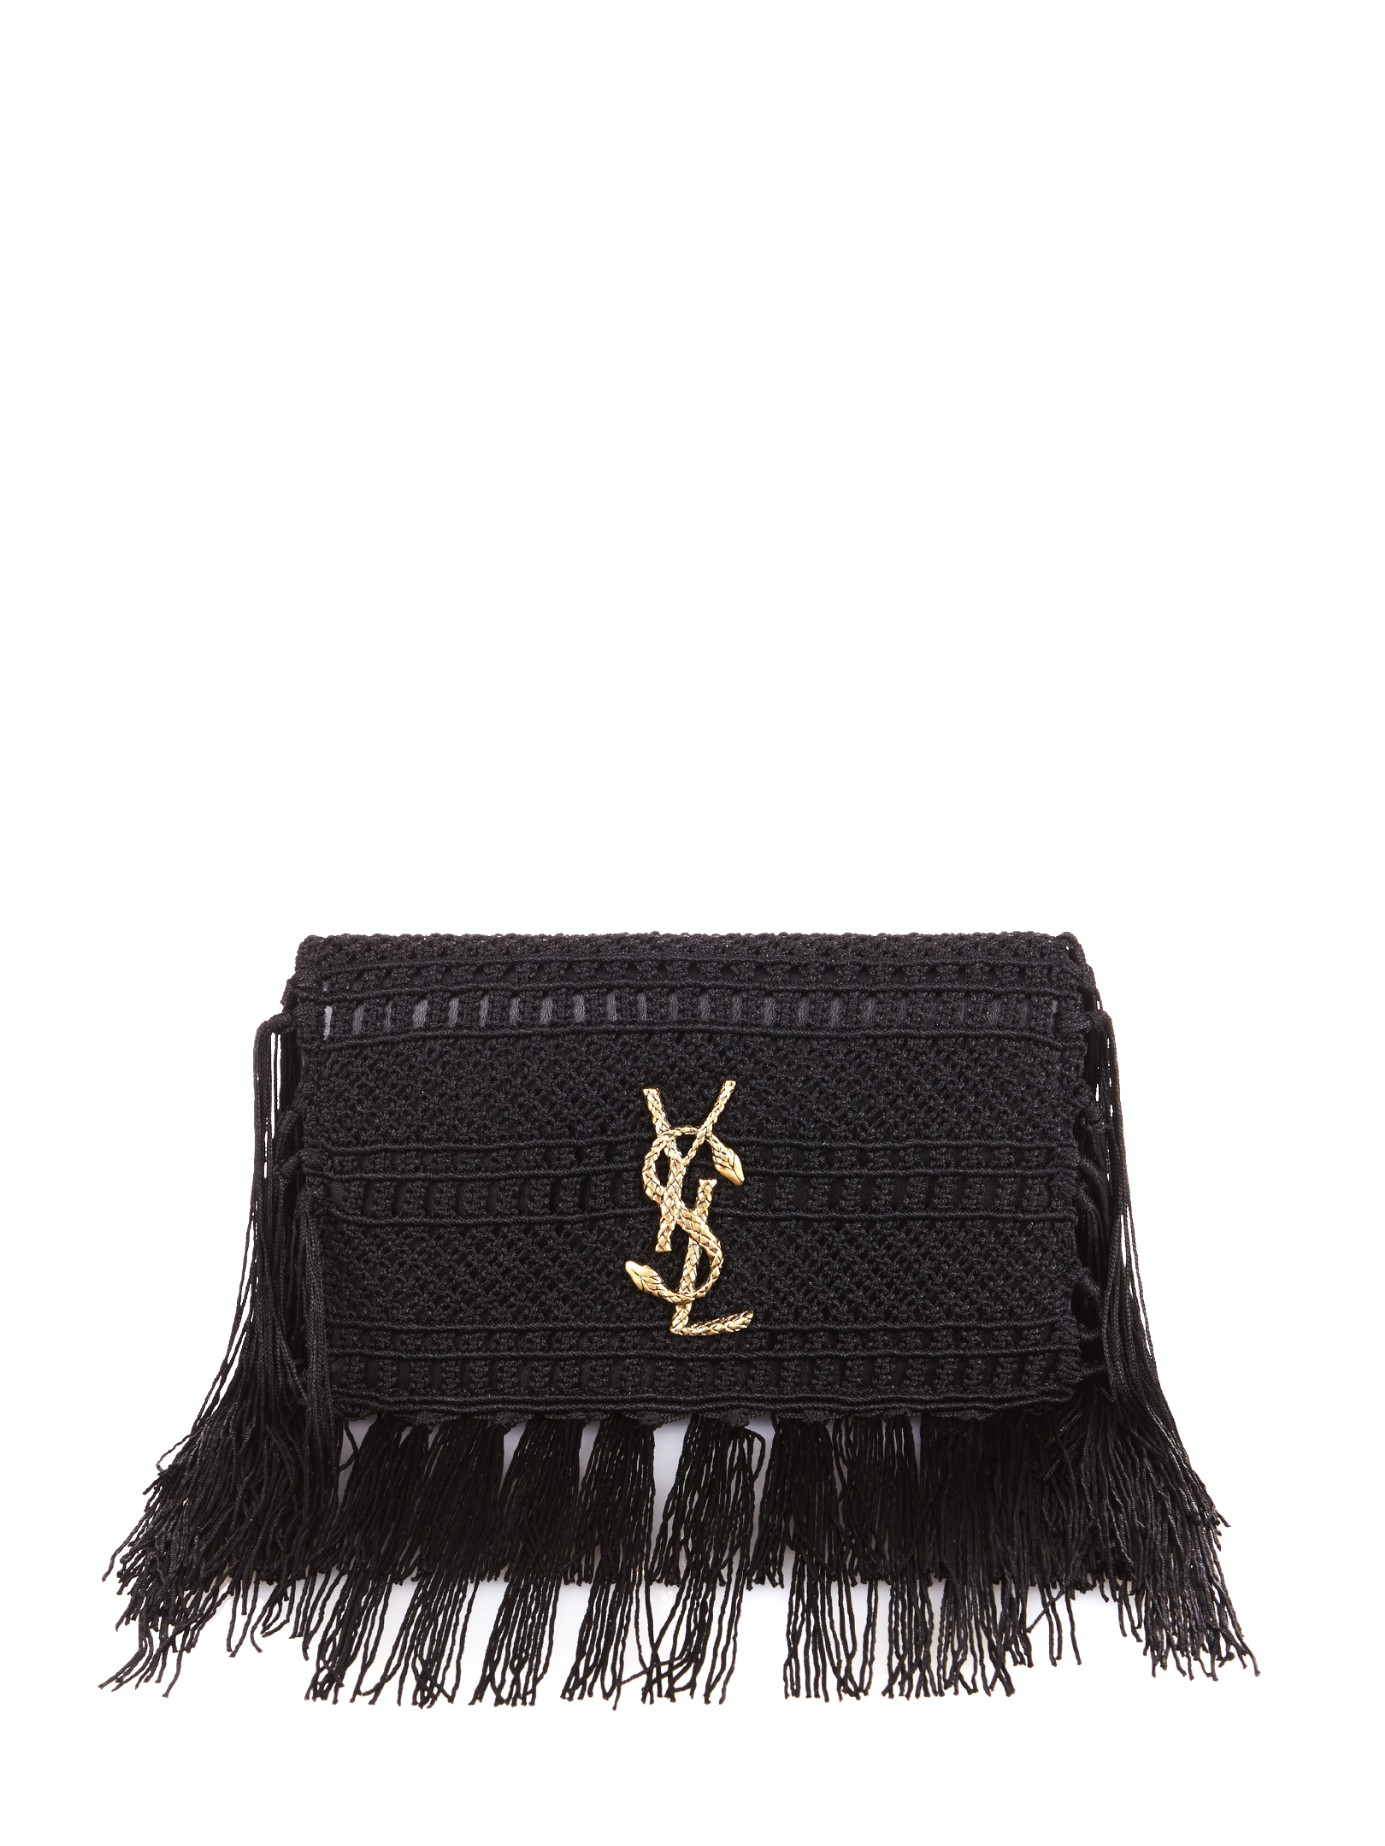 ysl patent leather wallet - monogram crochet fringe clutch bag, white